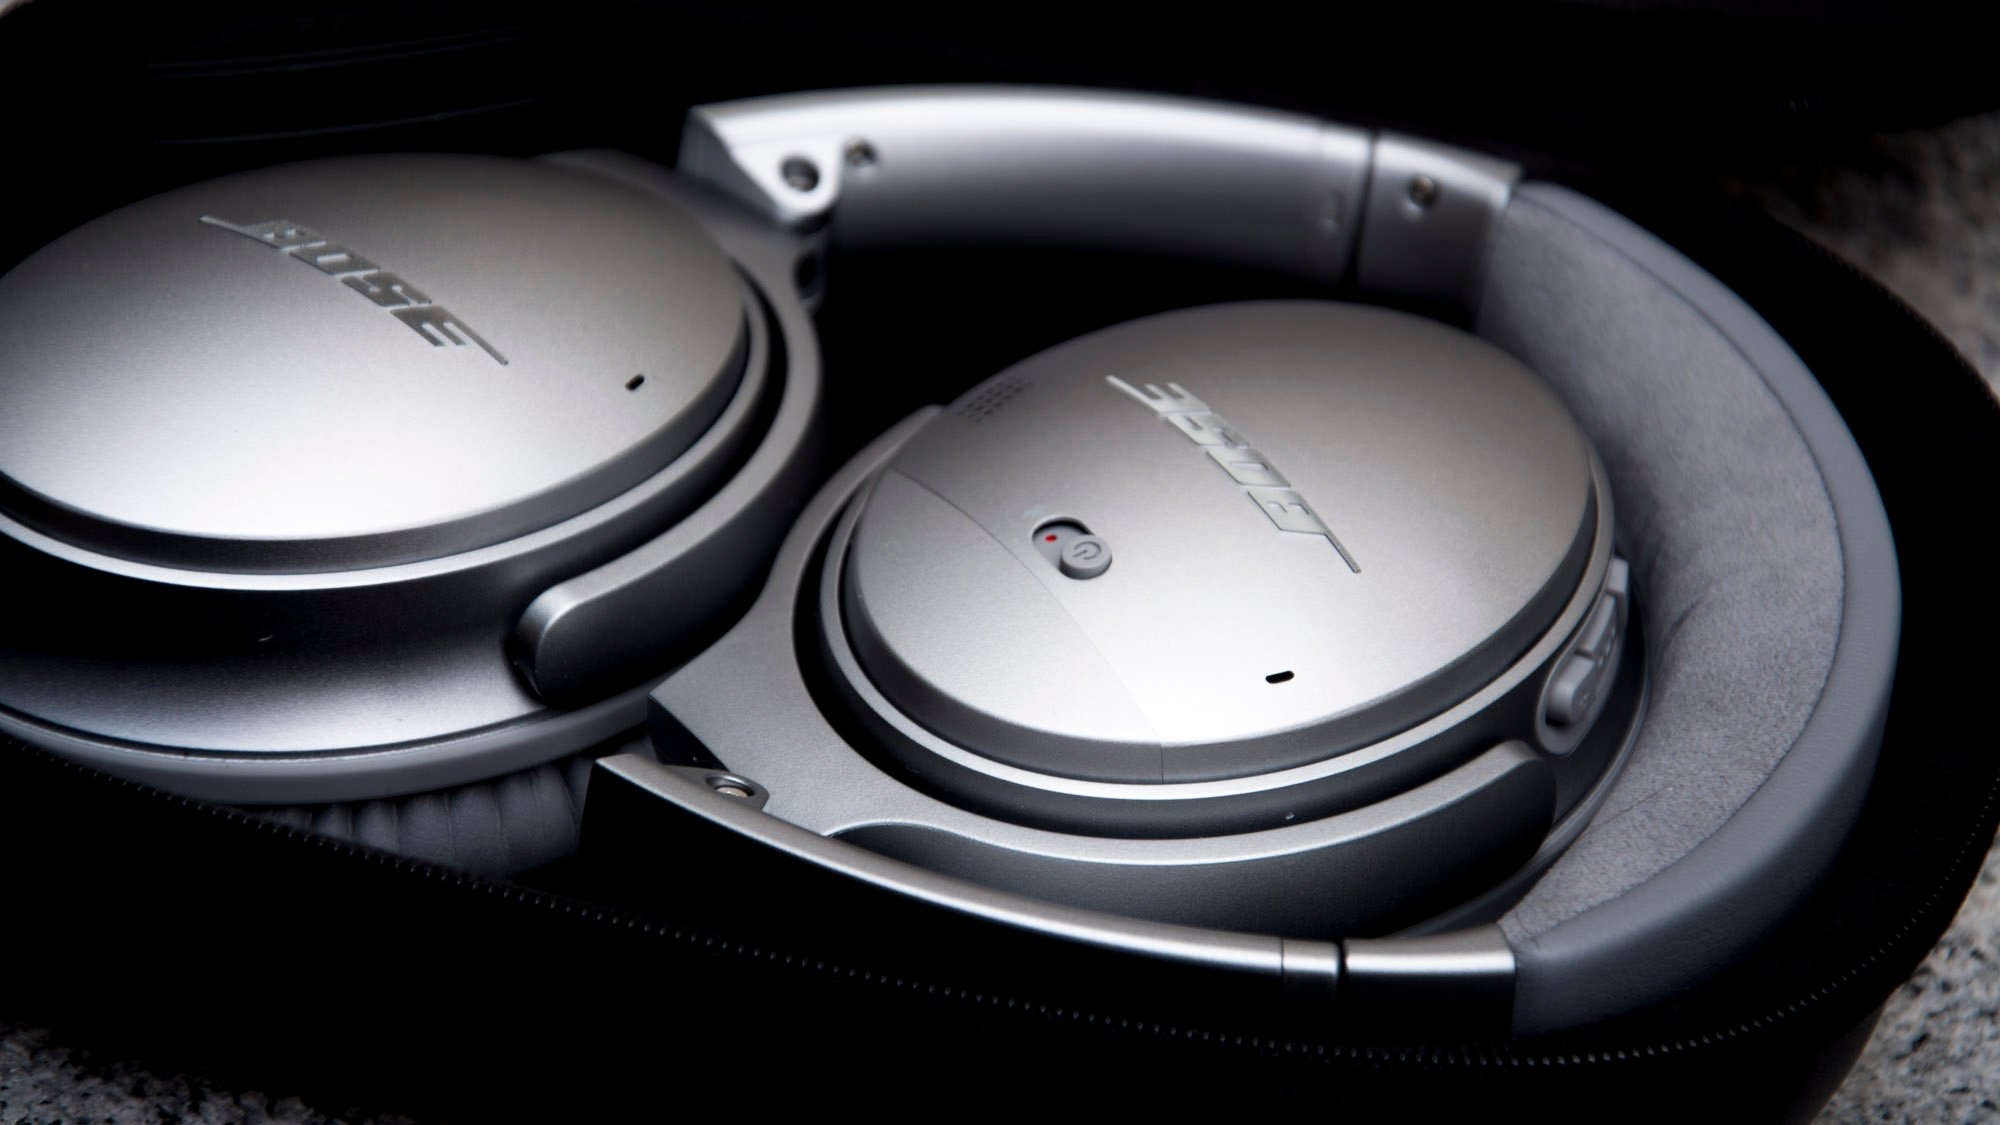 143dd092aa8 Bose QuietComfort 35 (series 1) review: A classic design, superseded |  Expert Reviews